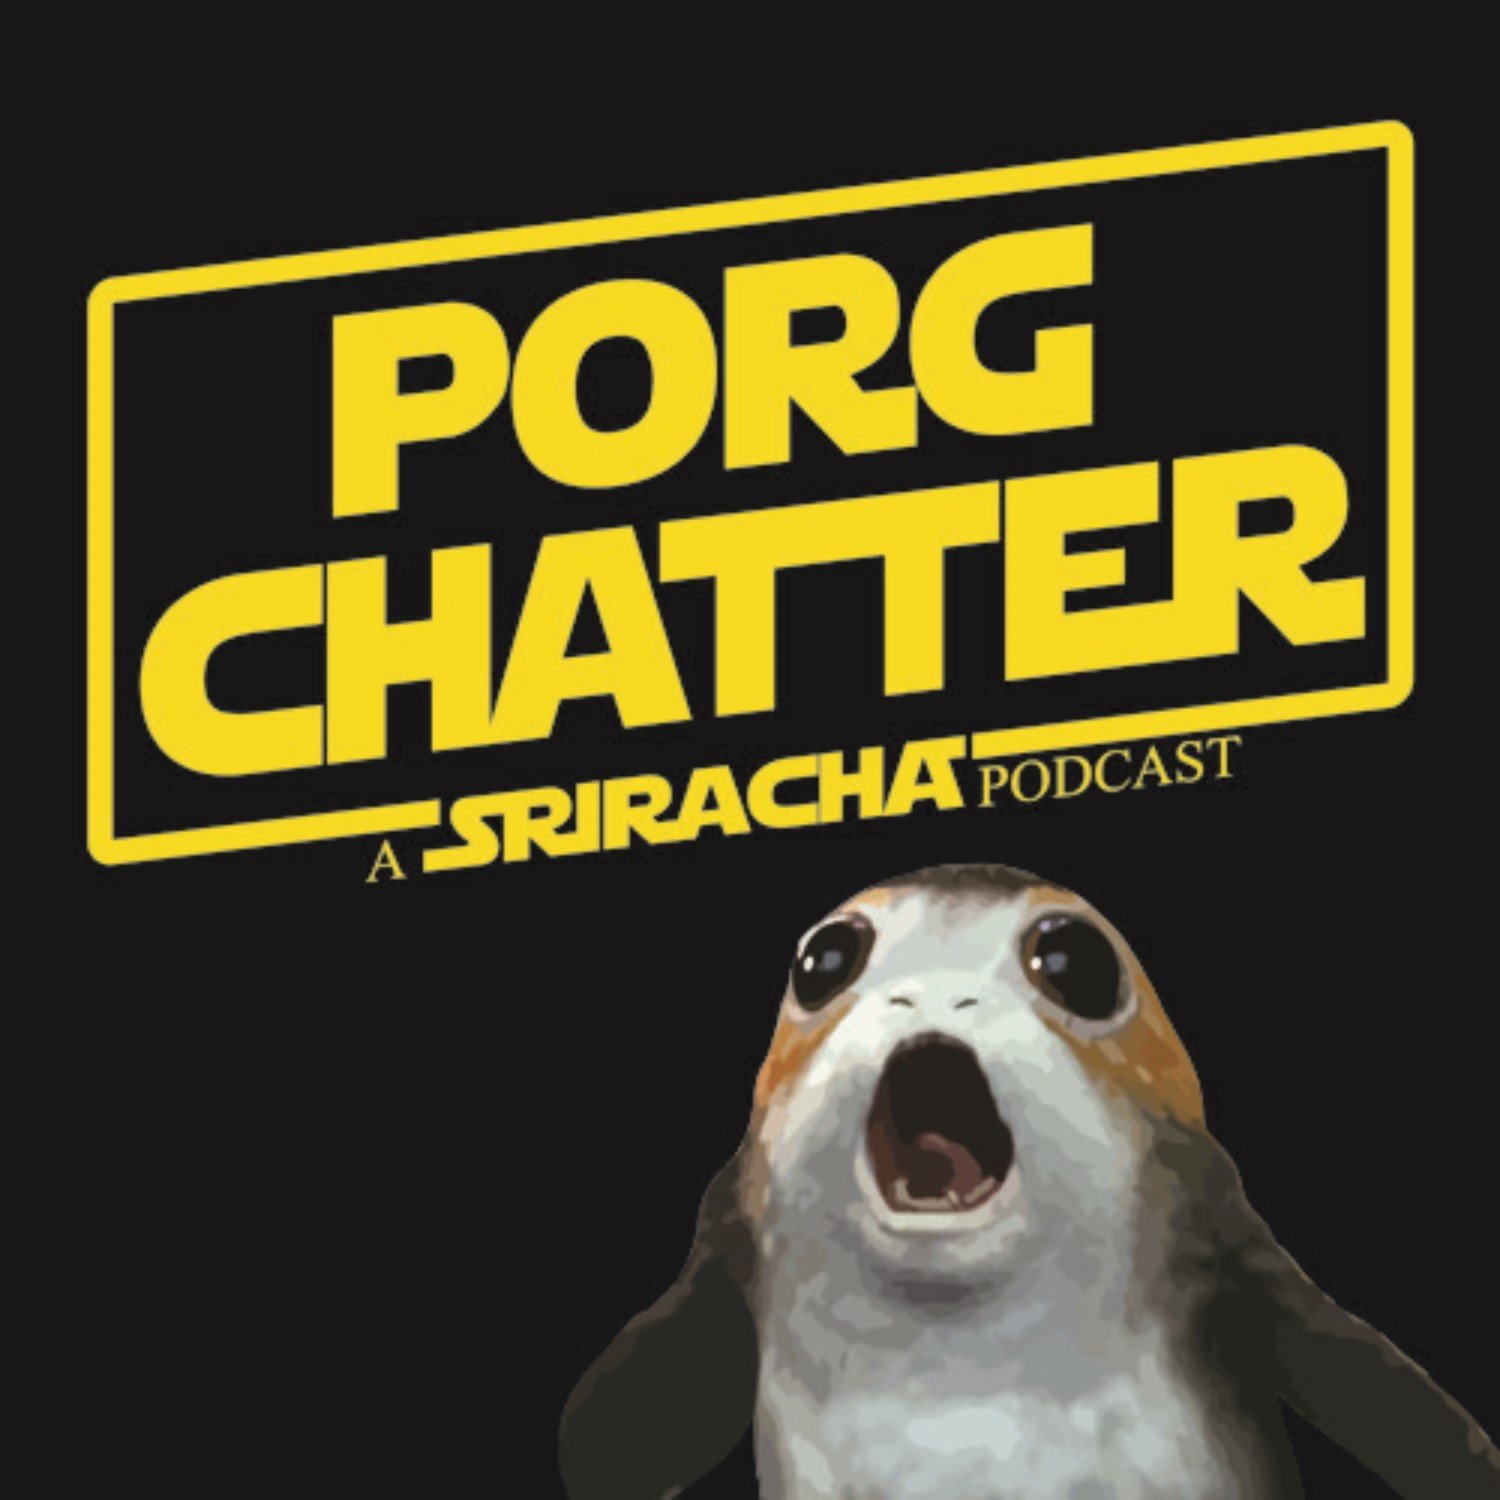 Porg Chatter #11: Orlando: The Mecca of Porgs